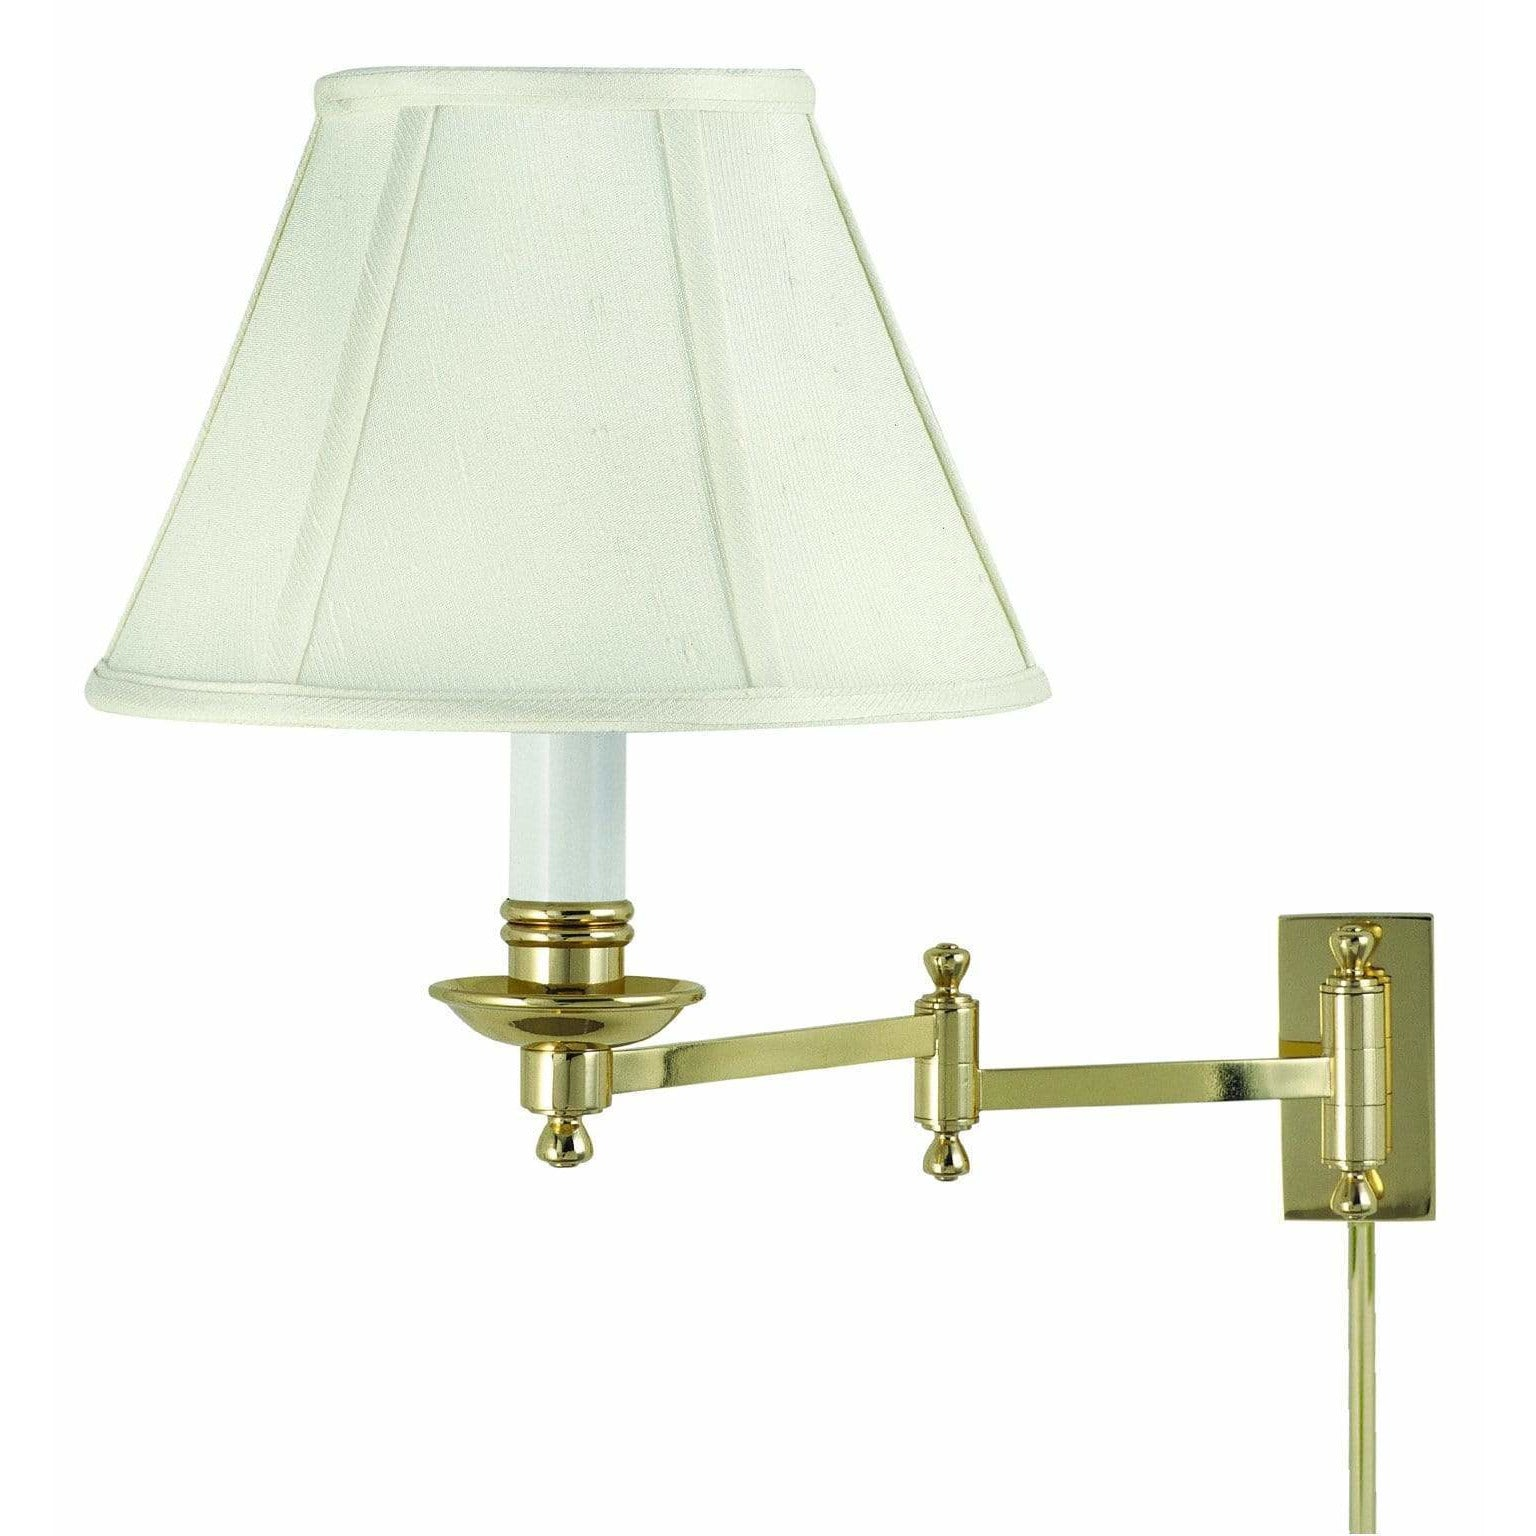 House Of Troy Wall Lamps Library Wall Swing Arm Lamp by House Of Troy LL660-PB